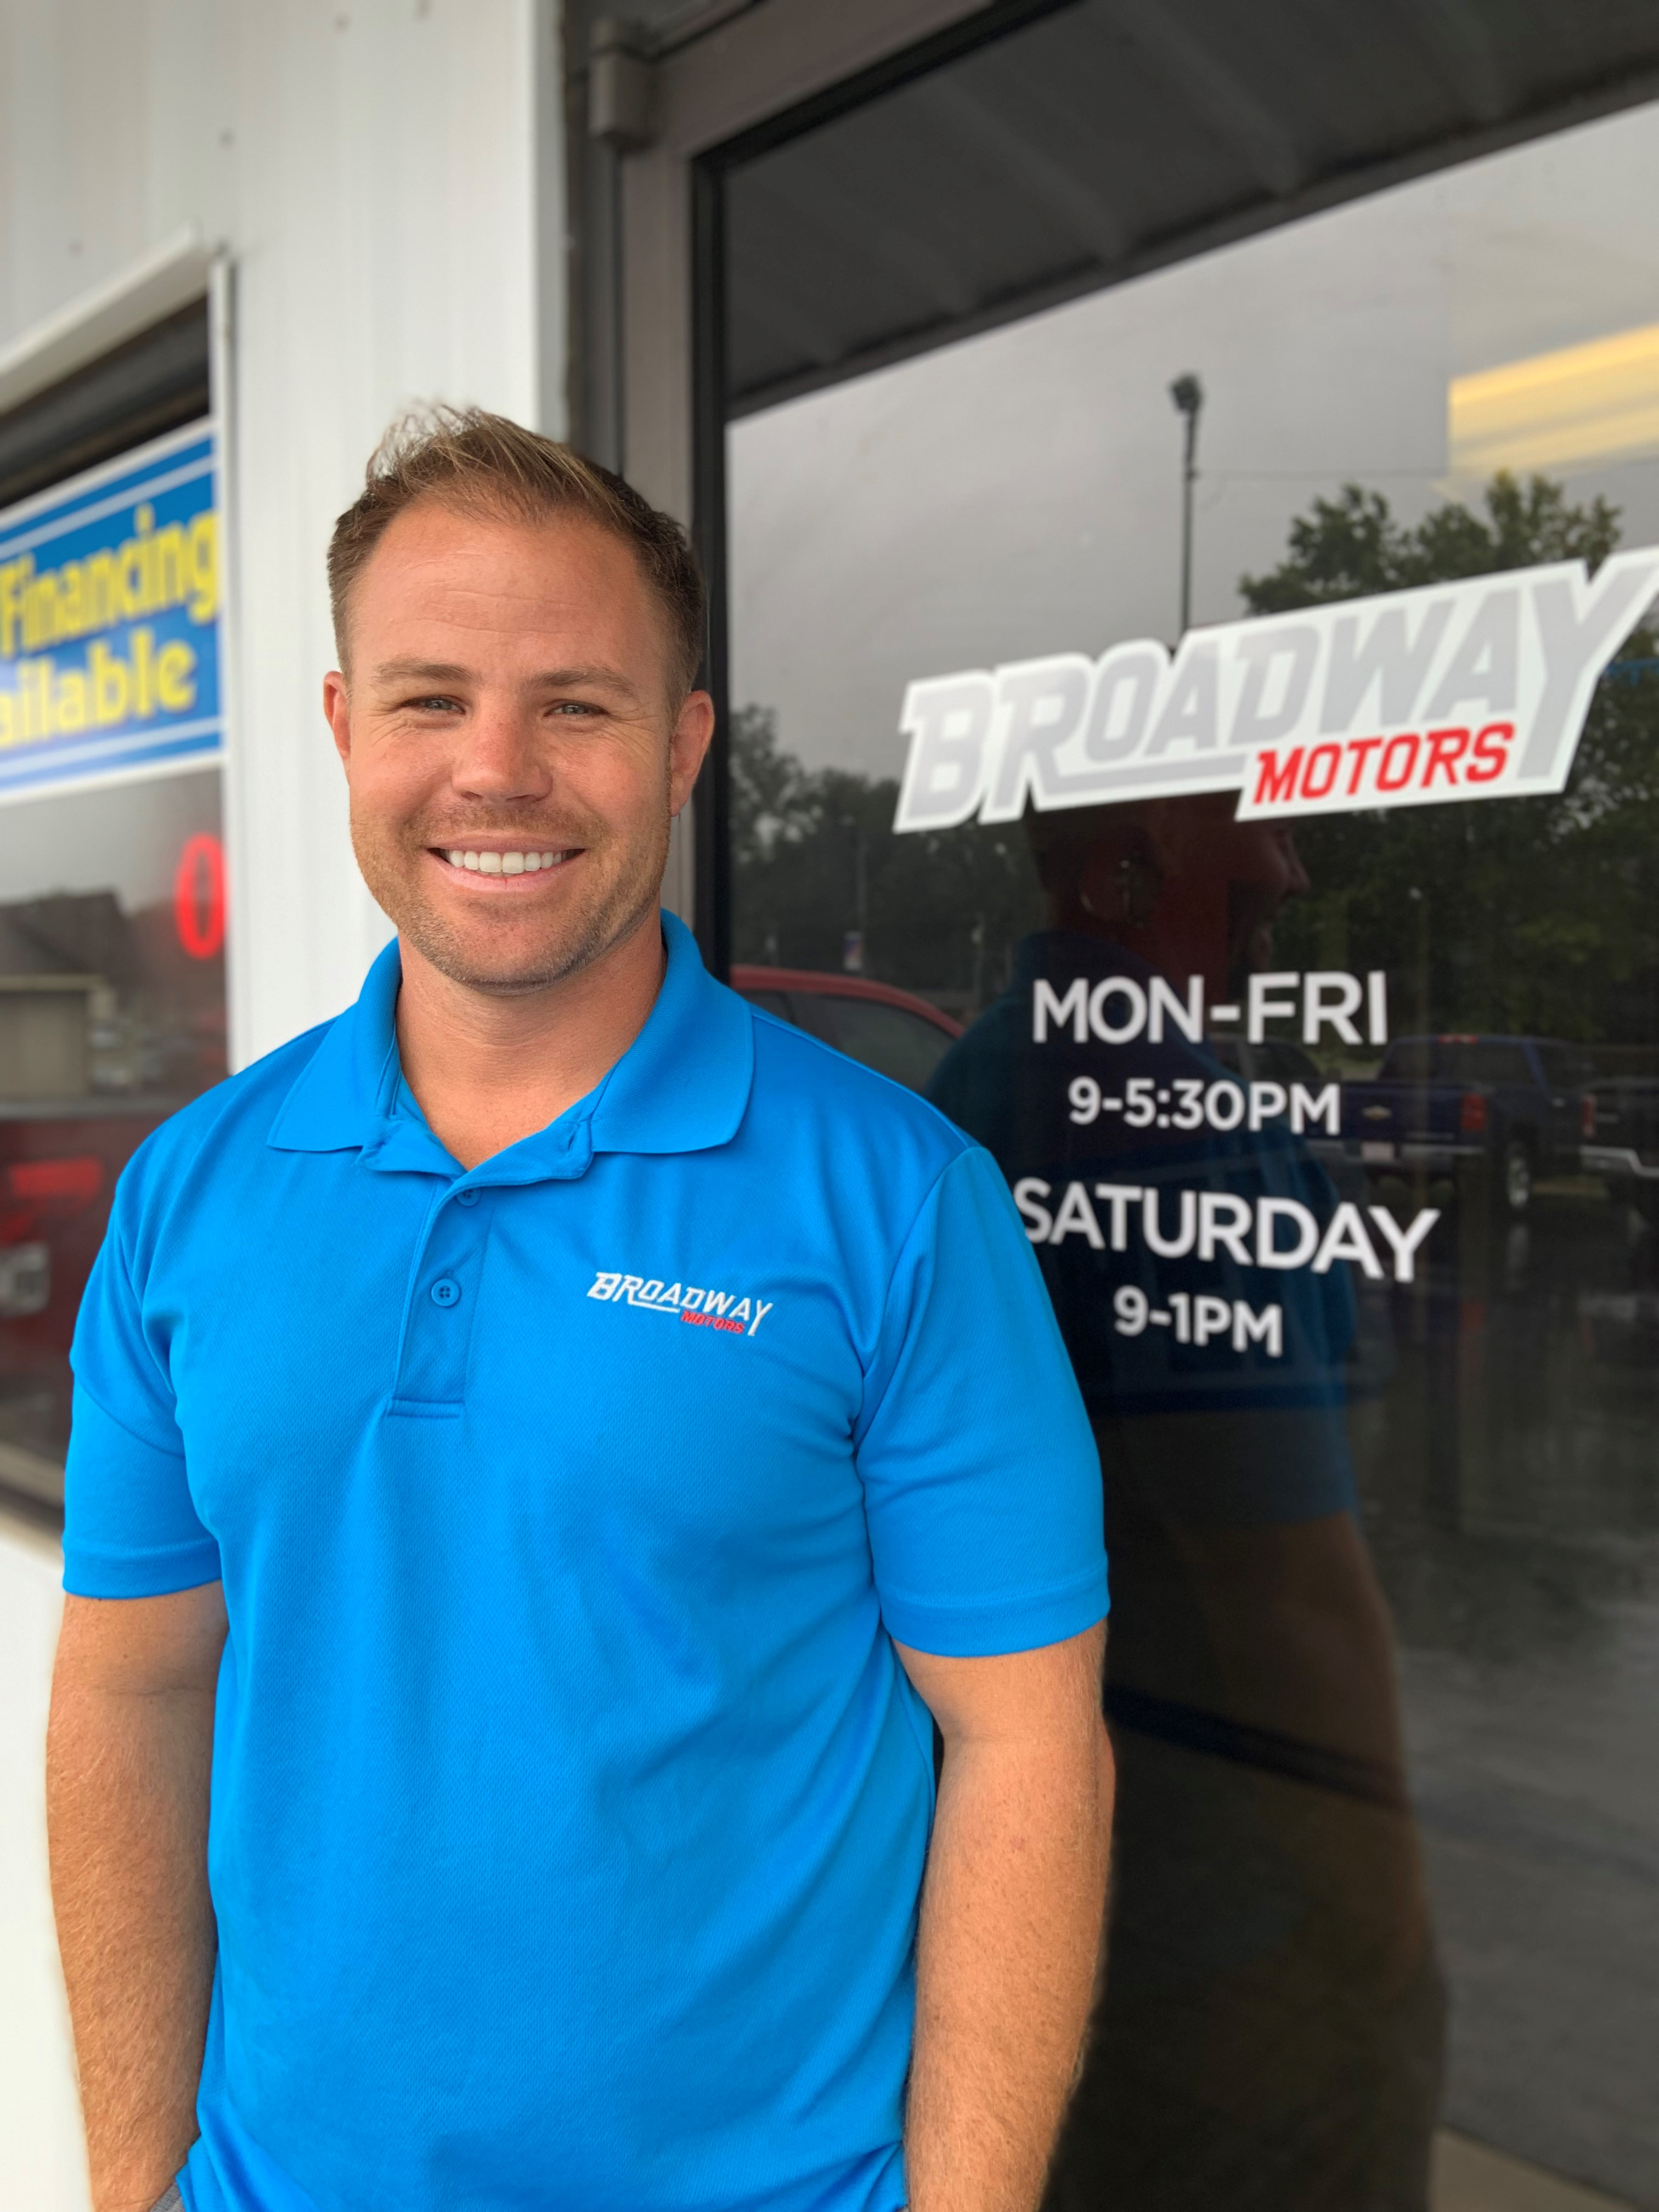 Member Spotlight: Broadway Motors Offers Casual Approach to Purchasing a Vehicle